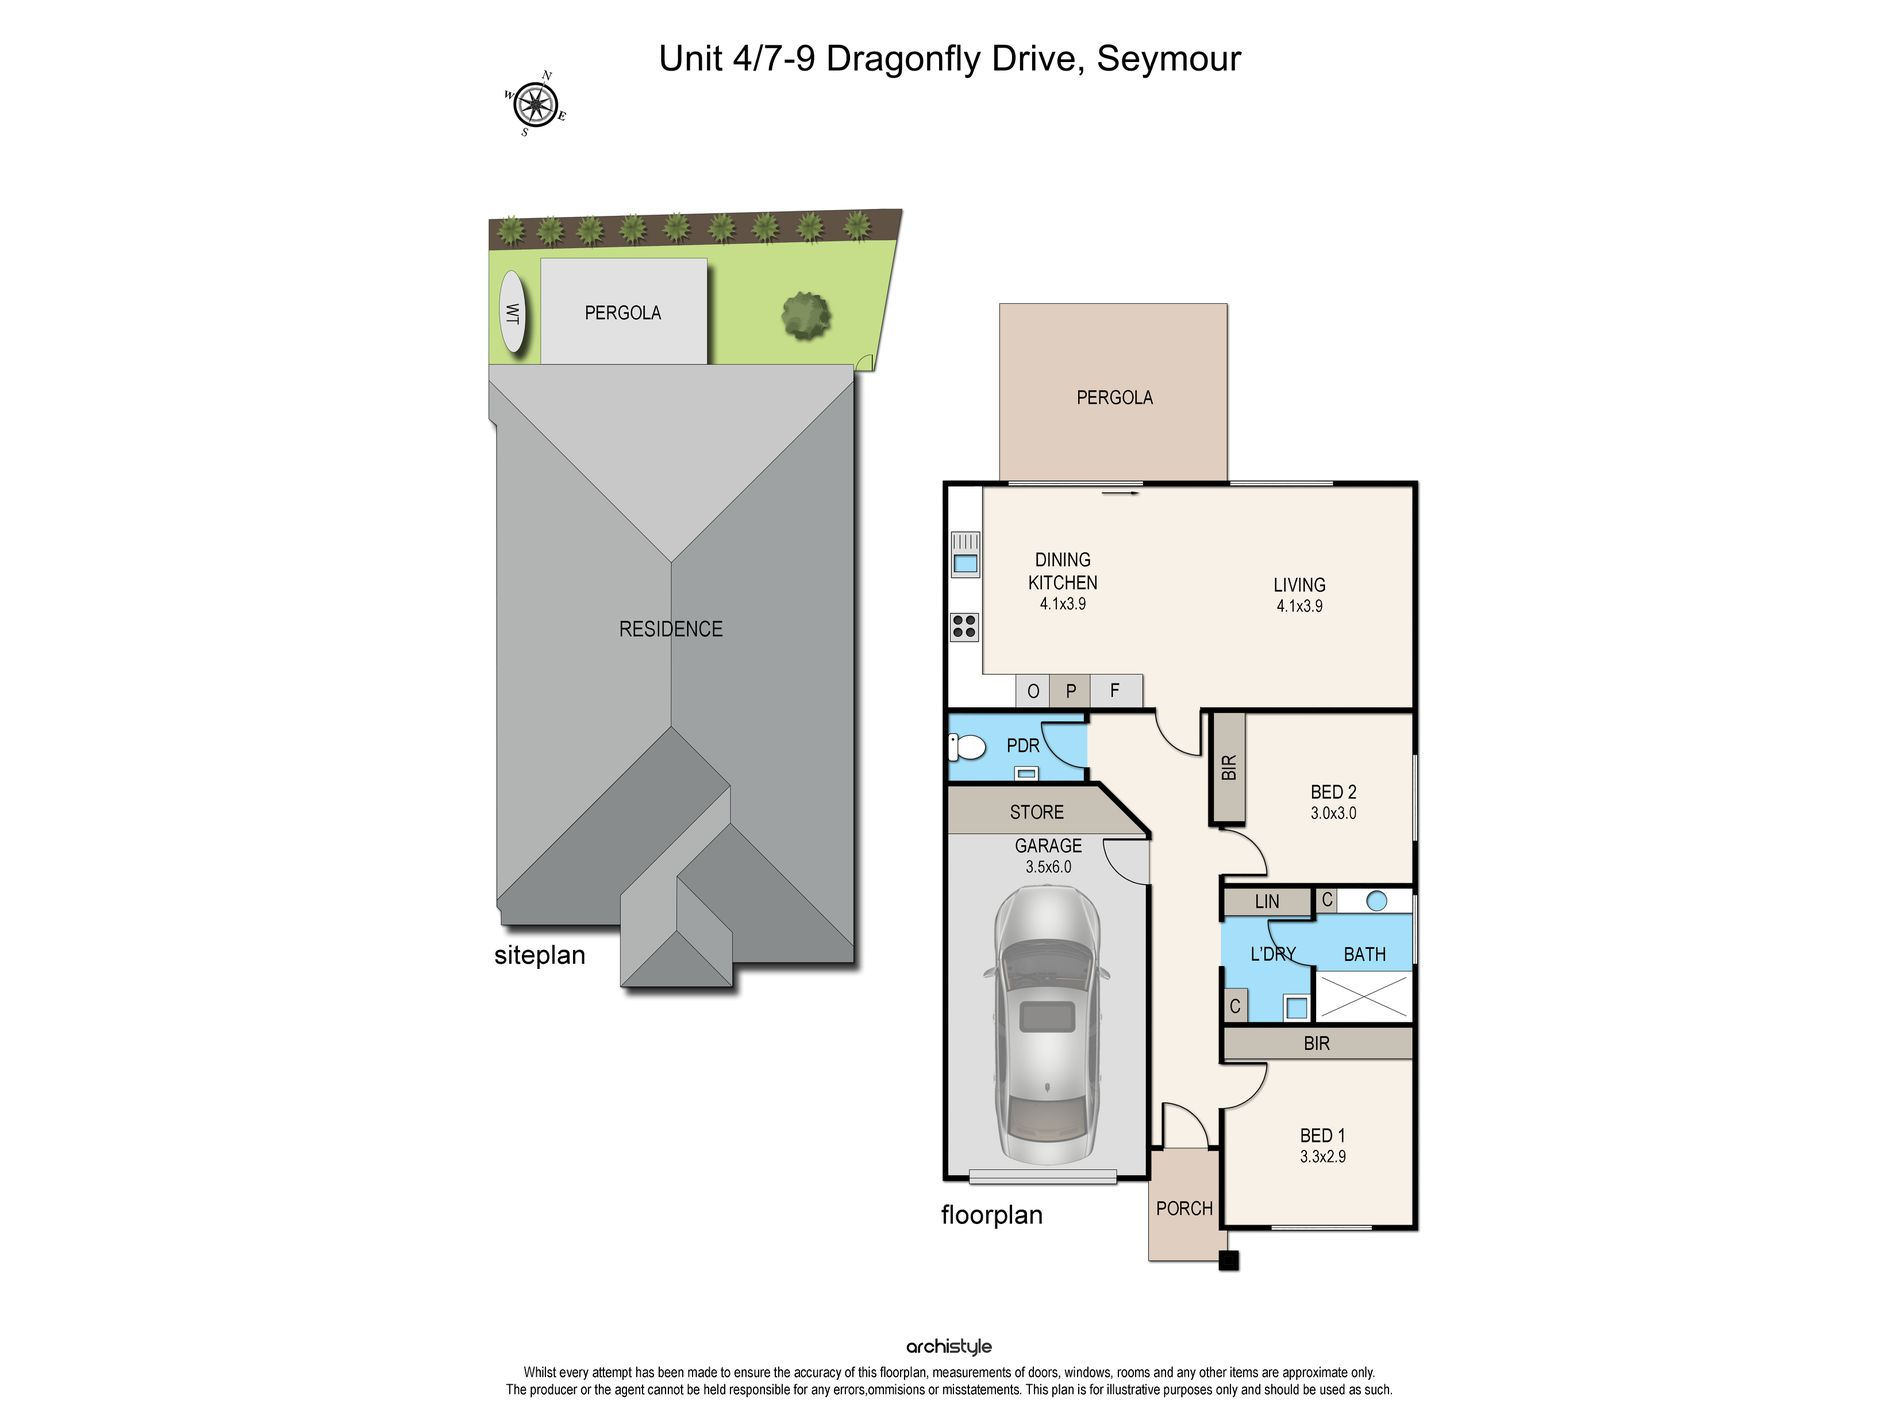 4 / 7-9 Dragonfly Drive, Seymour